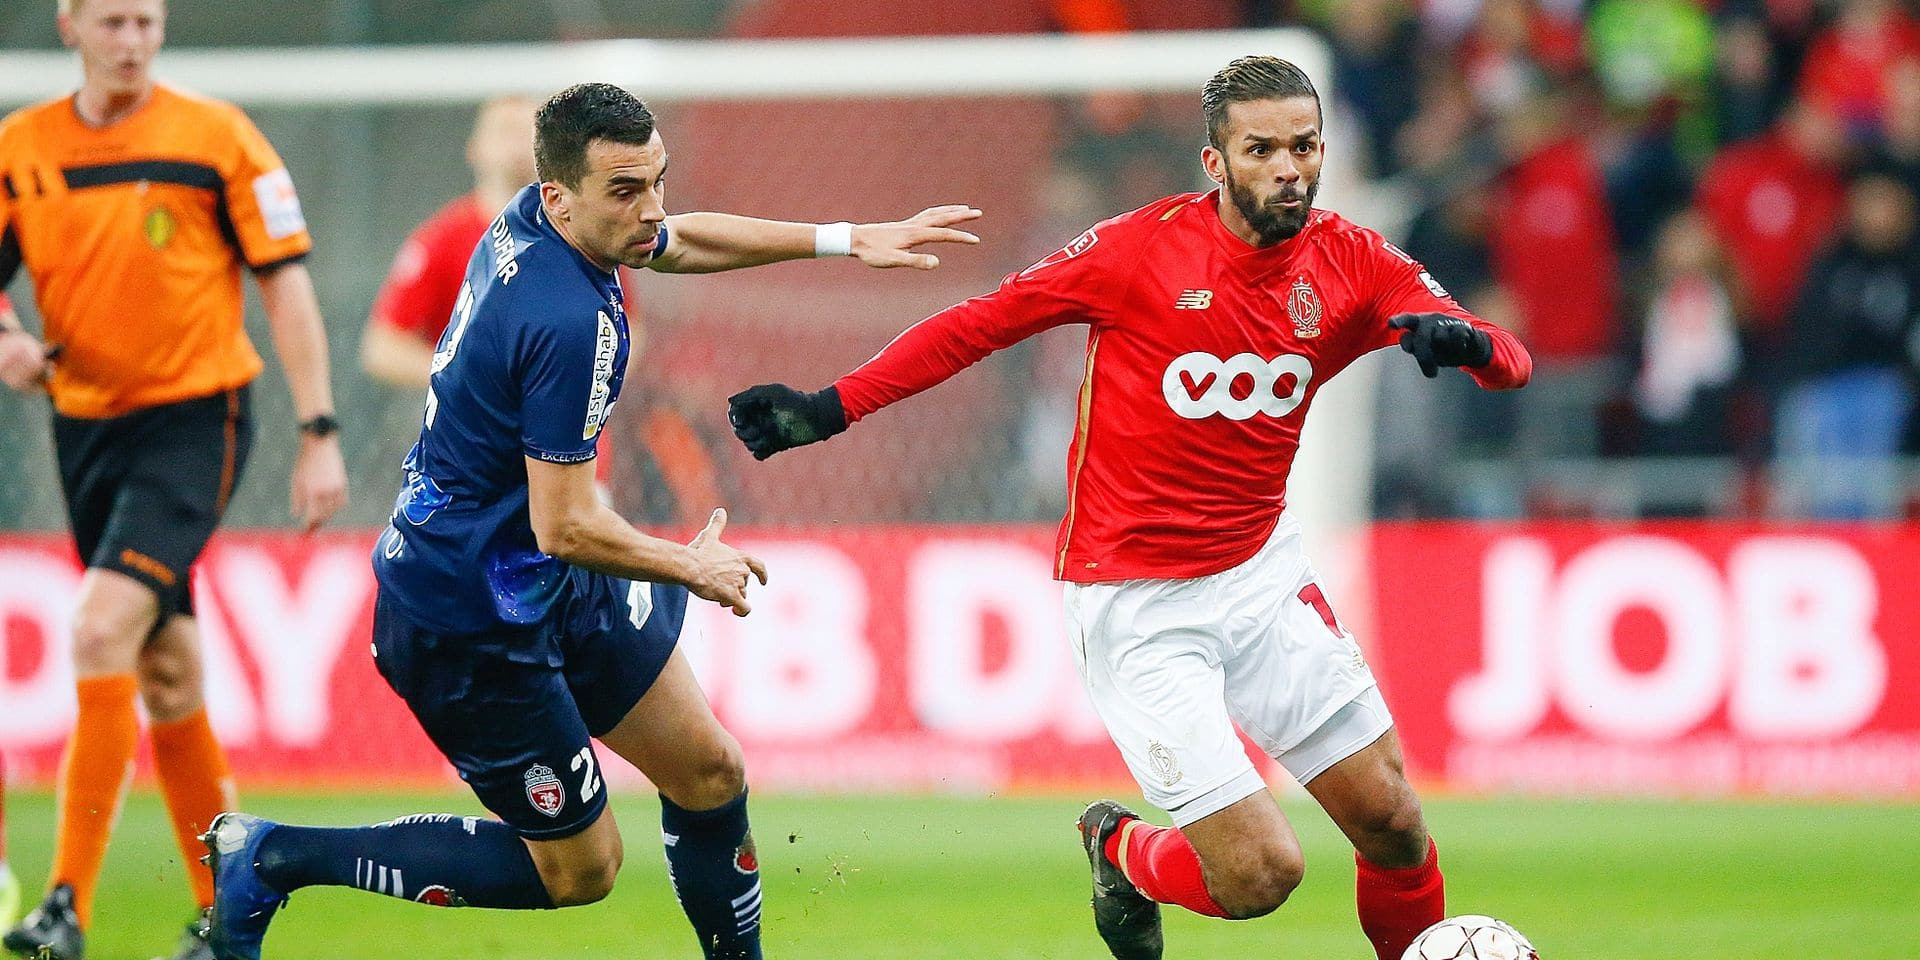 Mouscron's Noe Dussenne and Standard's Mehdi Carcela fight for the ball during a soccer game between Standard de Liege and Royal Excel Mouscron, Saturday 02 March 2019 in Liege, on the 28th day of the 'Jupiler Pro League' Belgian soccer championship season 2018-2019. BELGA PHOTO BRUNO FAHY